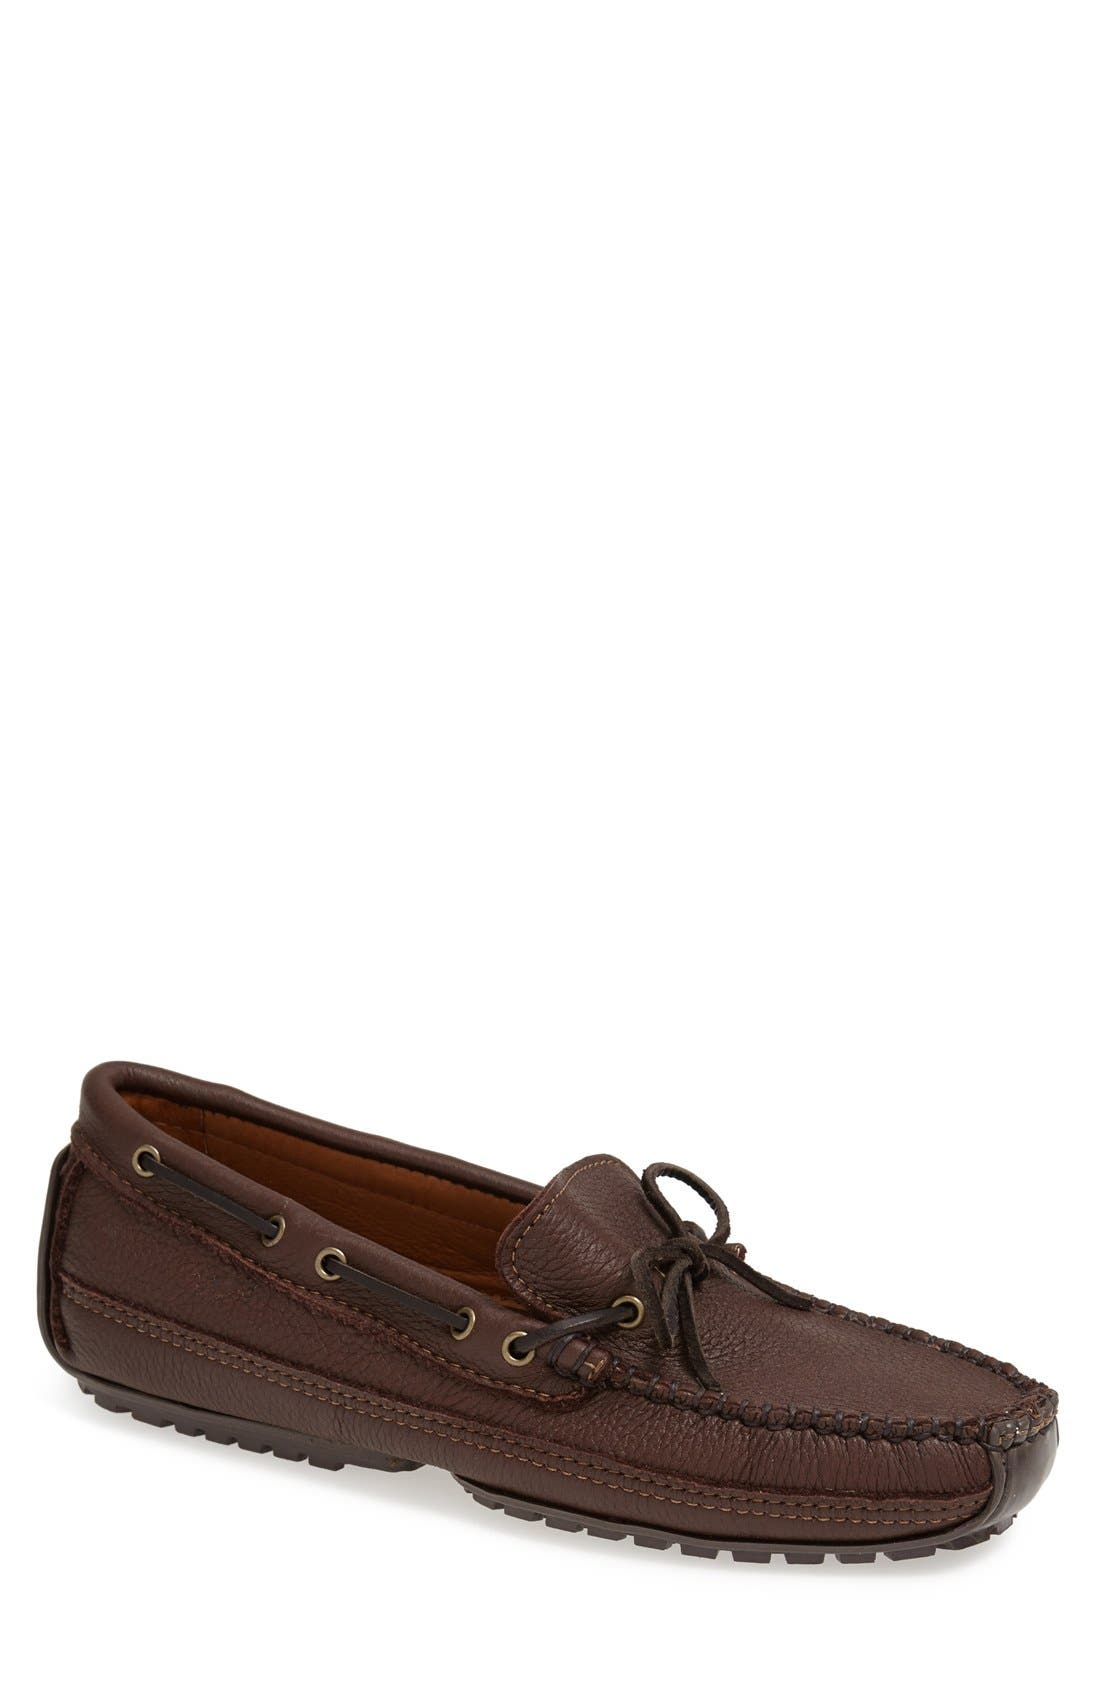 Main Image - Minnetonka Moosehide Moccasin (Men)